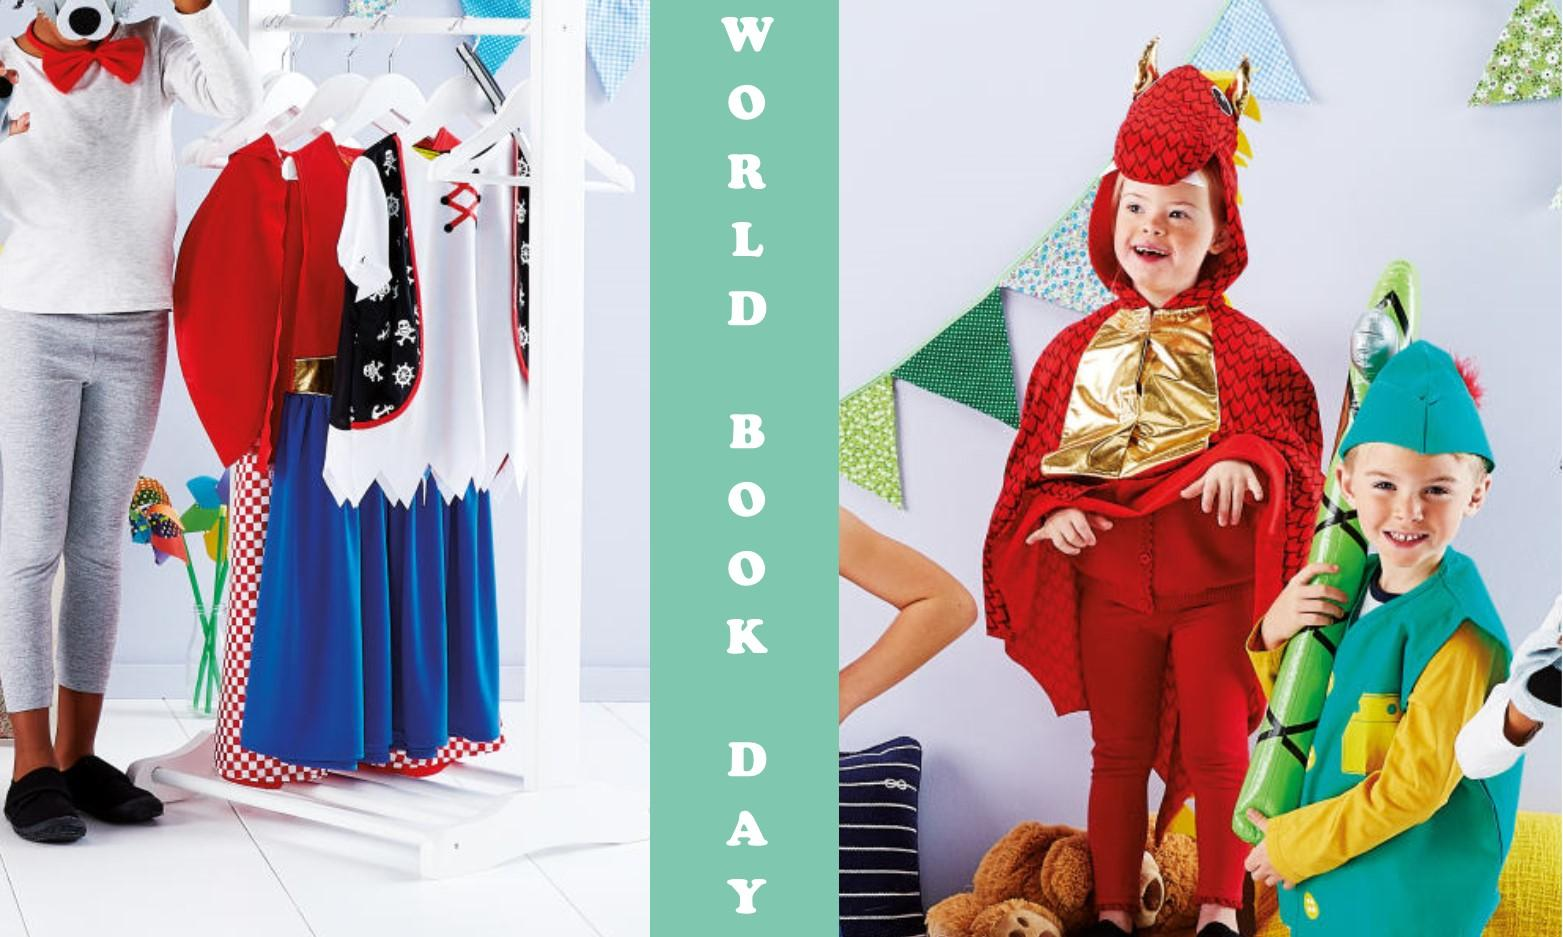 Aldi and Lidl Selling World Book Day Costumes From £4.99